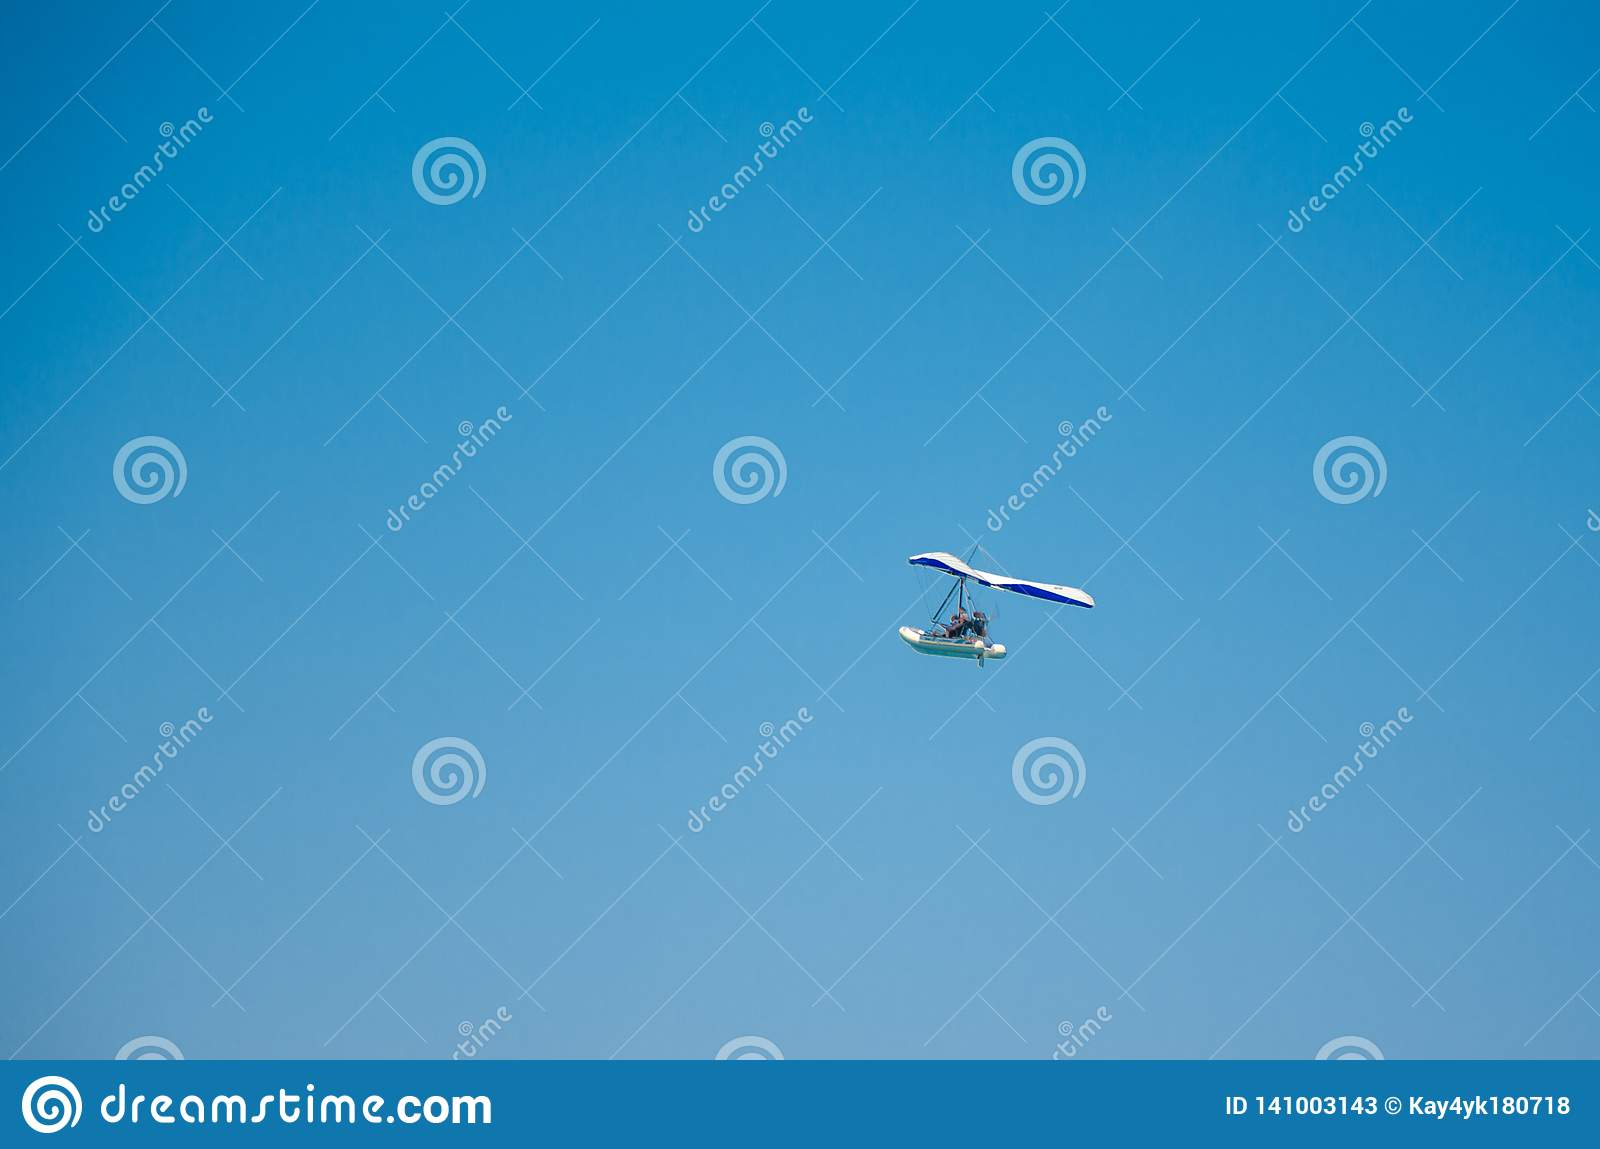 Flying motor boat in the clear blue sky